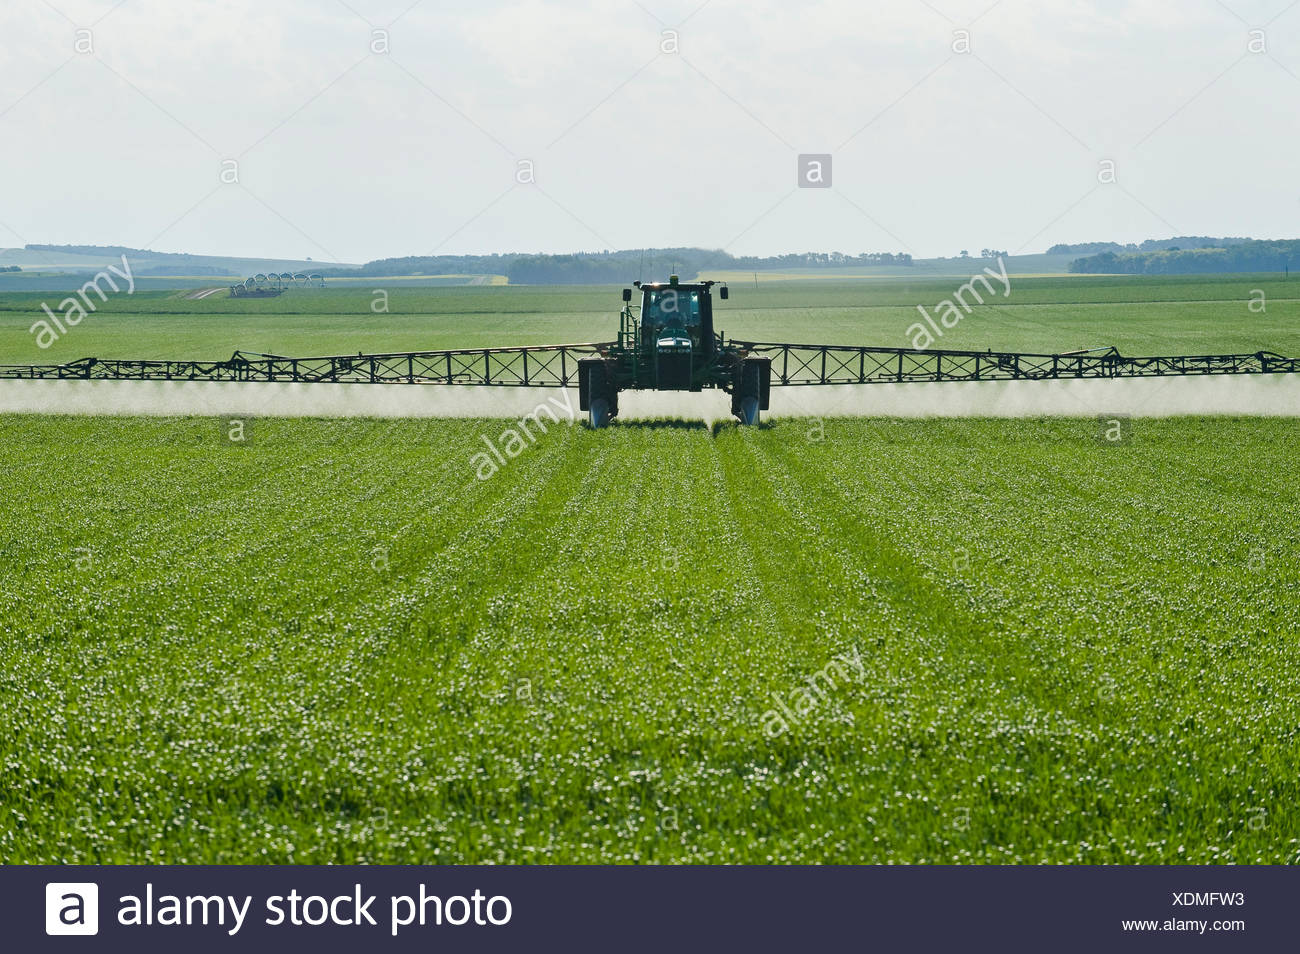 a high clearance sprayer applies fungicide to wheat, near Holland, Manitoba, Canada - Stock Image